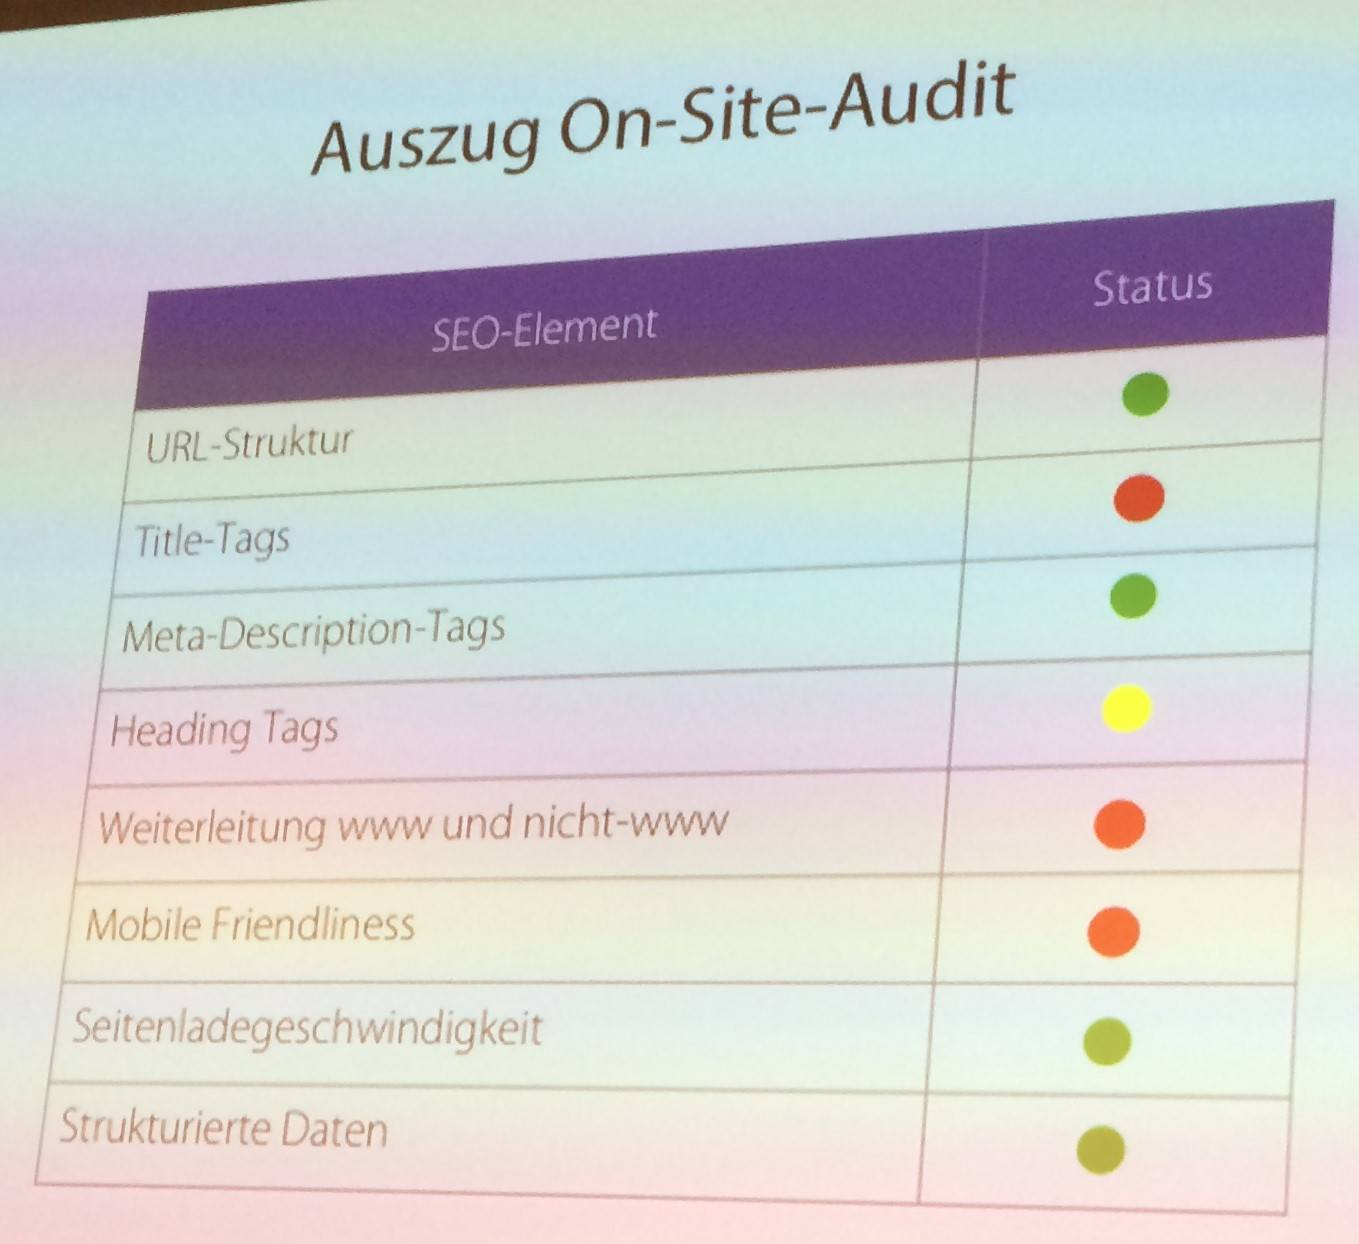 Resultate des On-Site-Audits